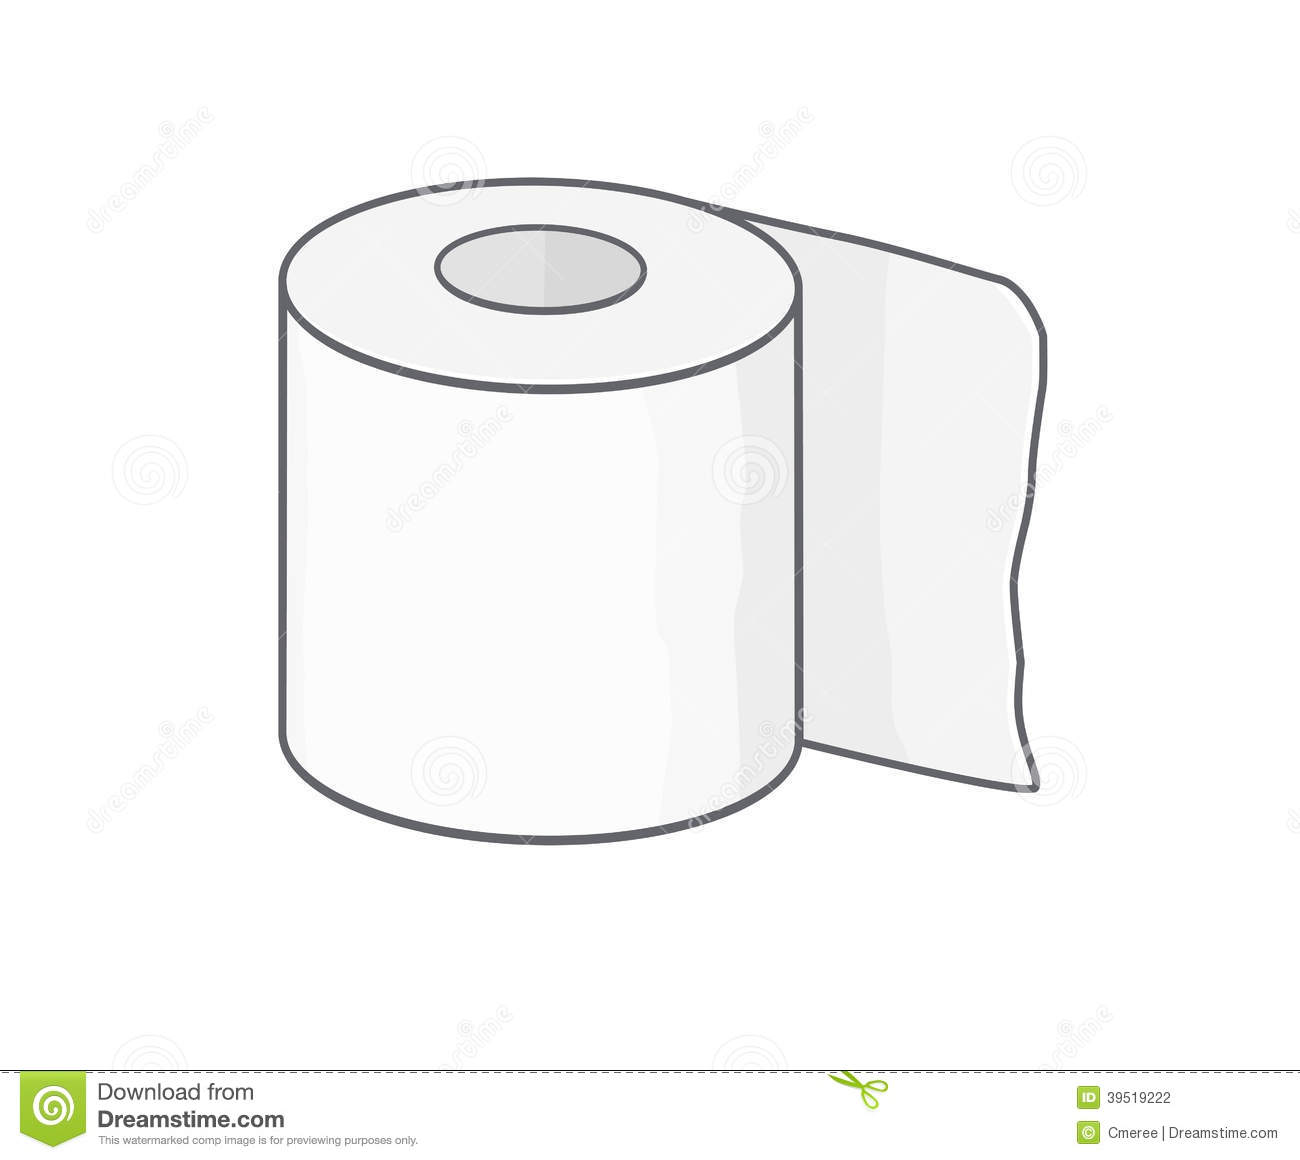 Drawing of an isolated reel of toilet paper.